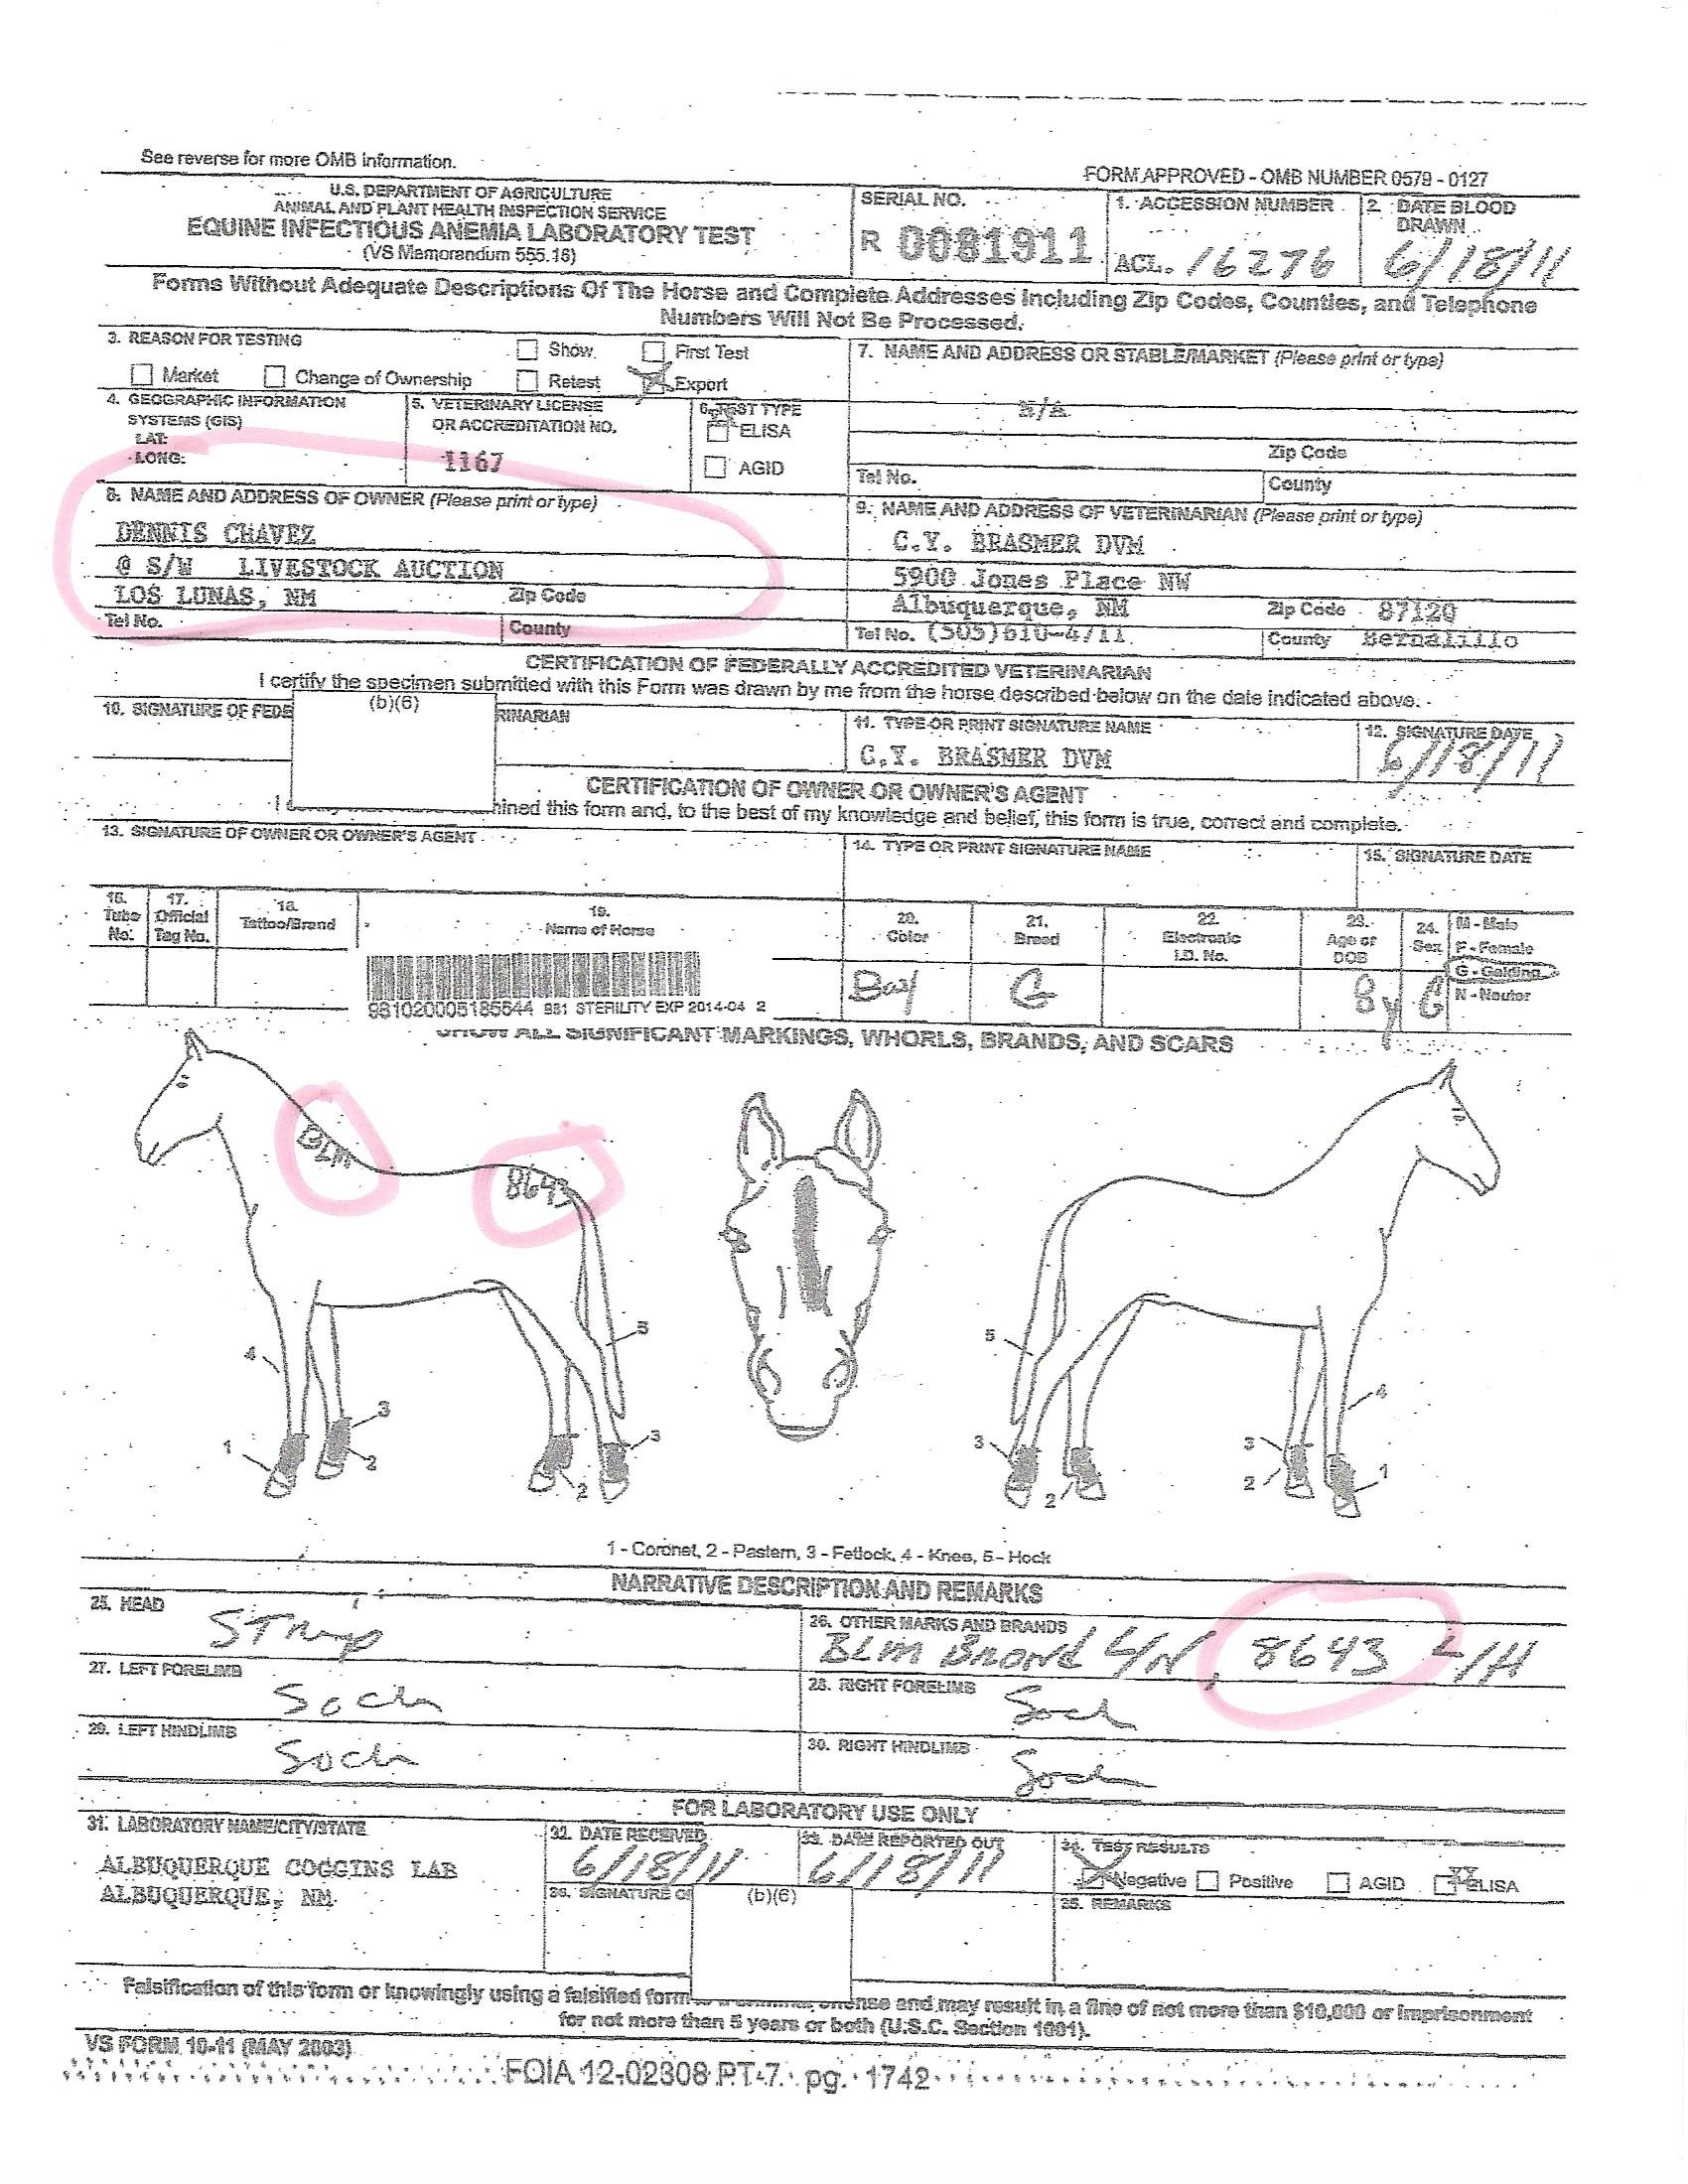 The truth 2 equine welfare alliance and wild horse freedom sent humberto lucero of santa teresa nm a fax notifying him that a shipment of 76 horses to mexico on the usda international health certificates 1betcityfo Choice Image